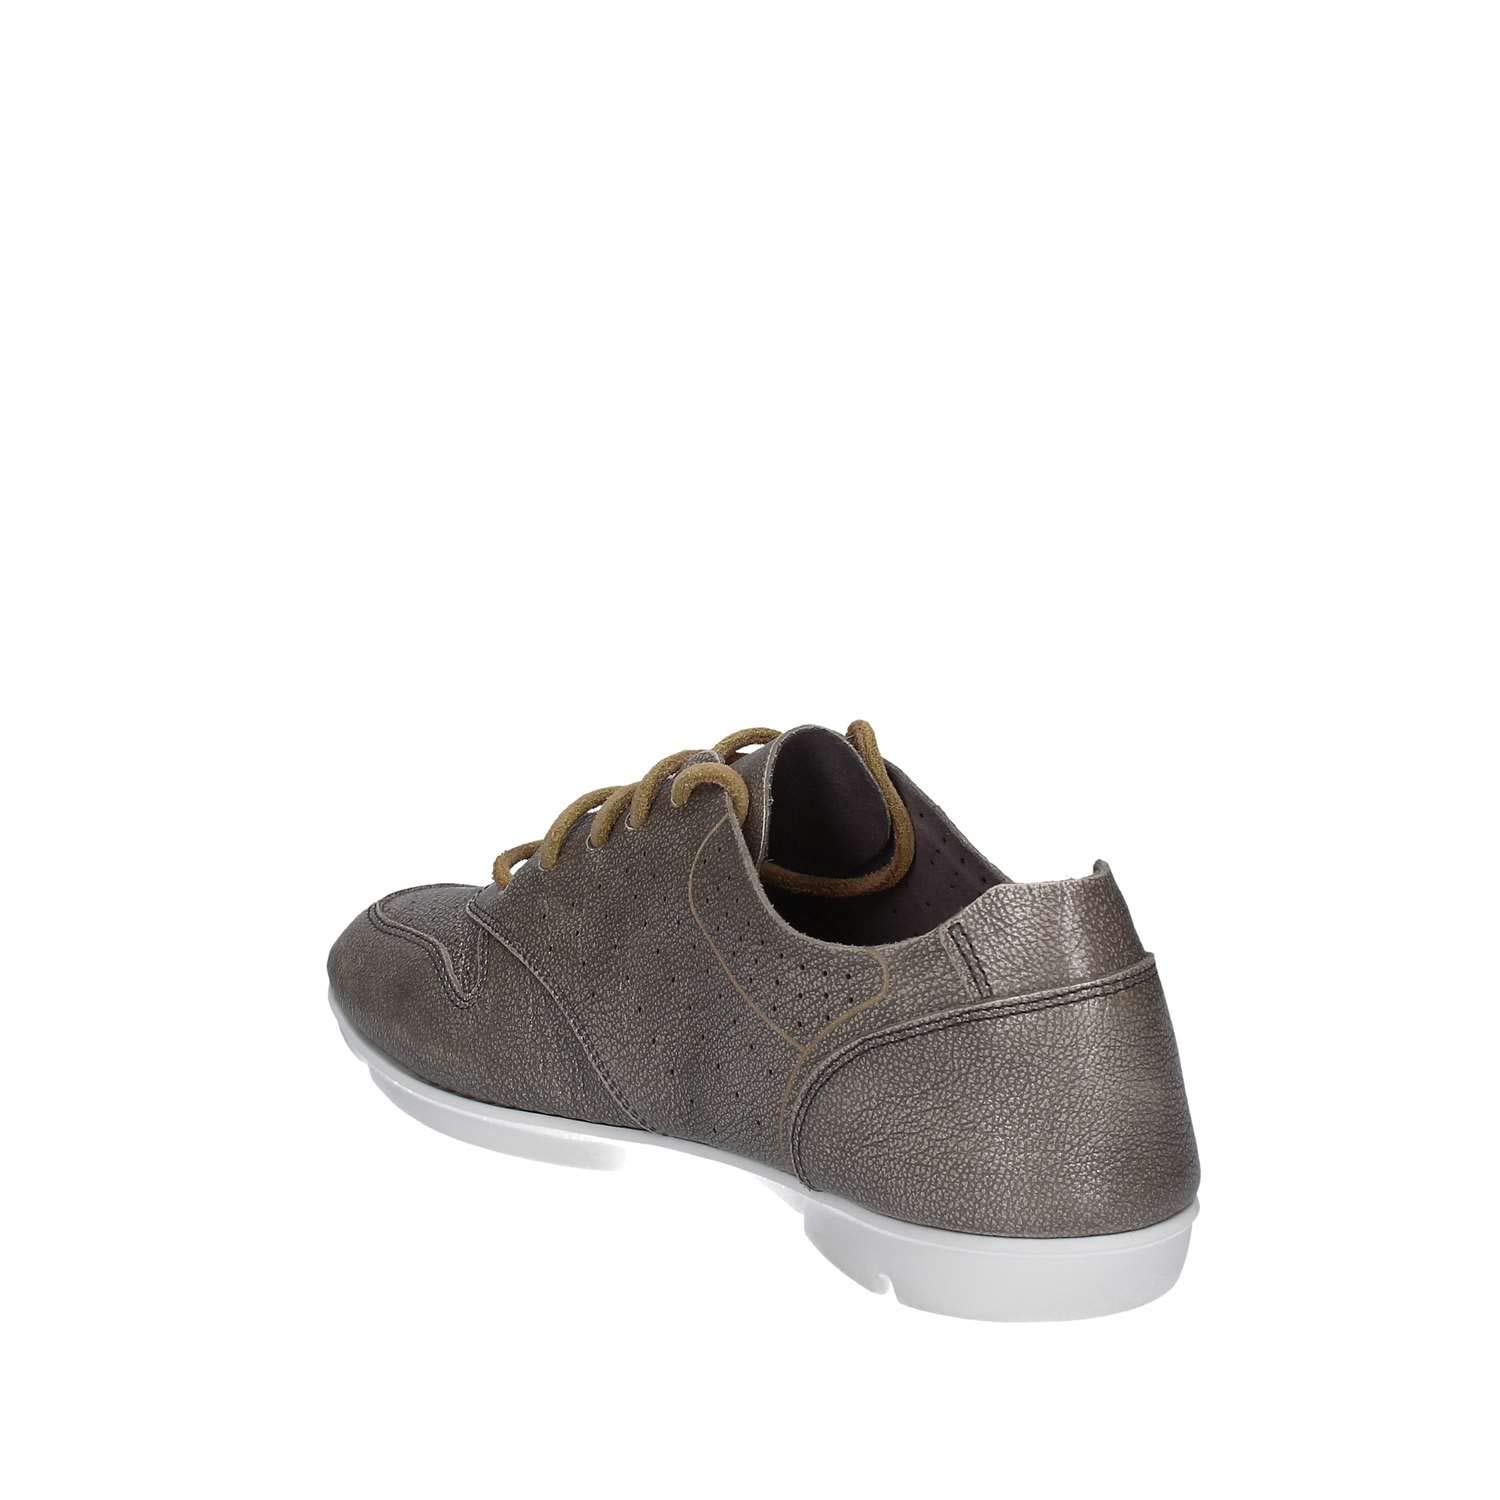 reputable site cdcba ed943 ... Clarks Tri Actor - - - Zapatos con cord oacute n Mujer 4ec9ec ...